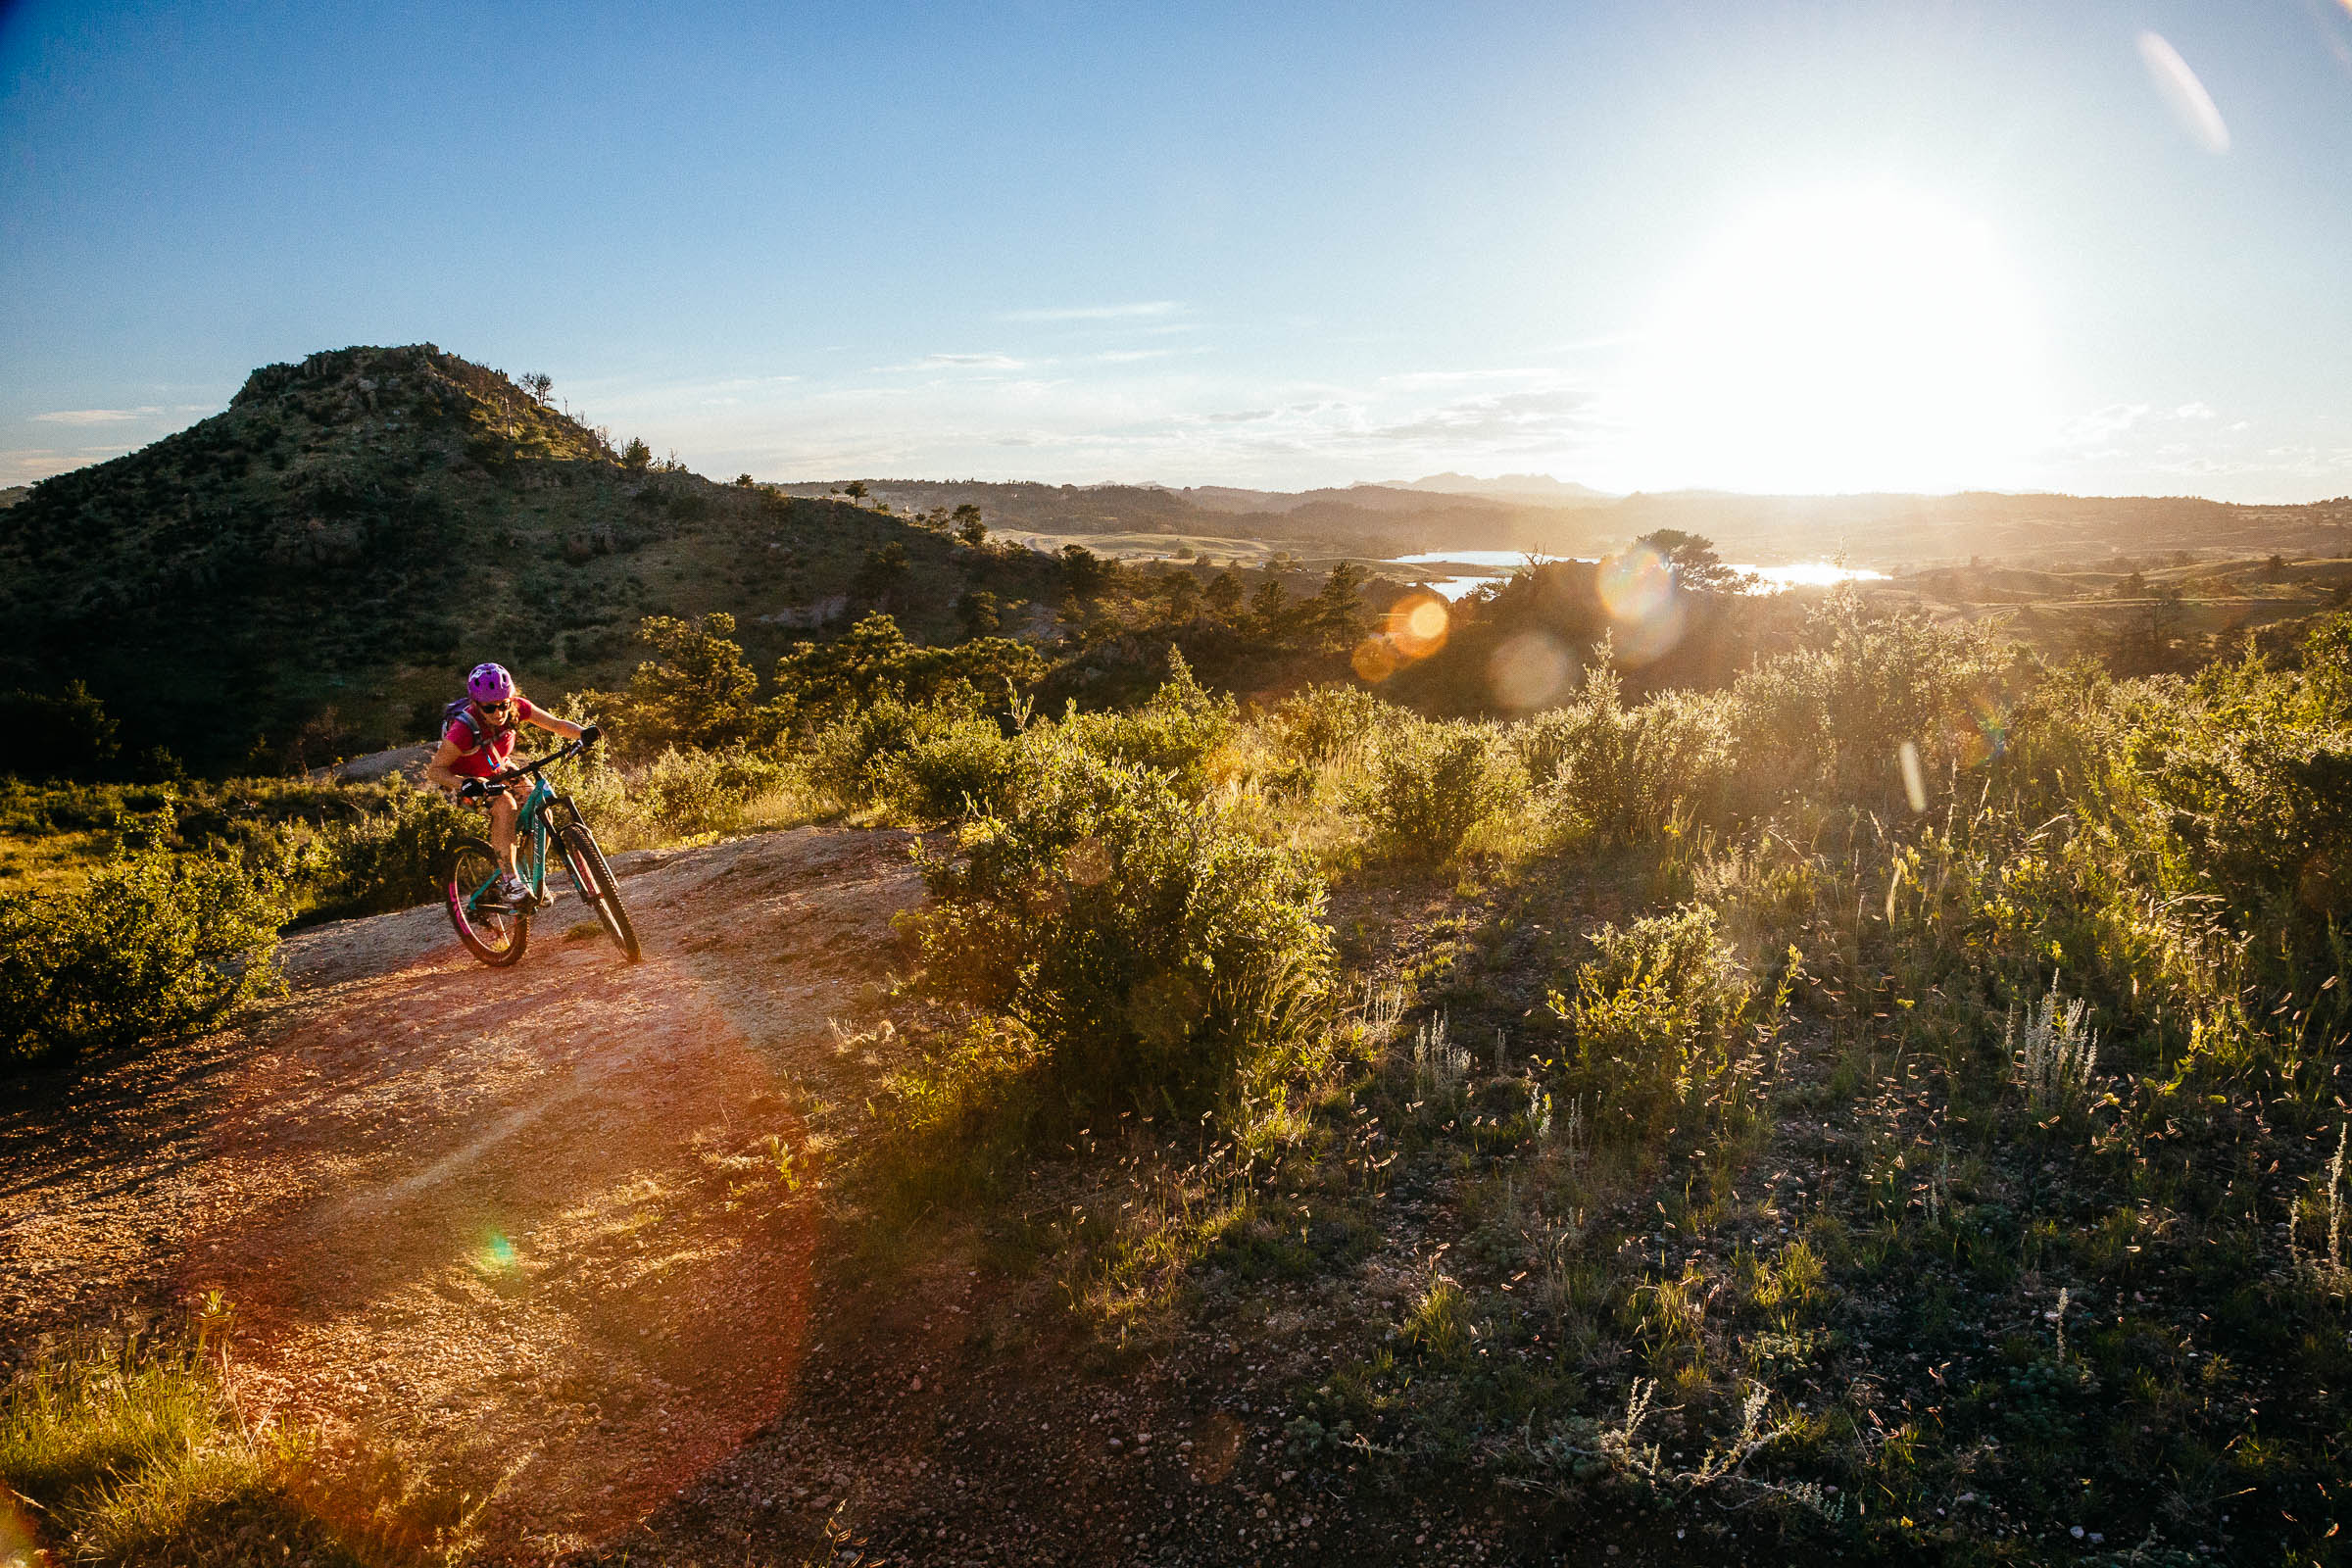 Heather Goodrich rides the Middle Kingdom Trail in Curt Gowdy State Park in Eastern Wyoming